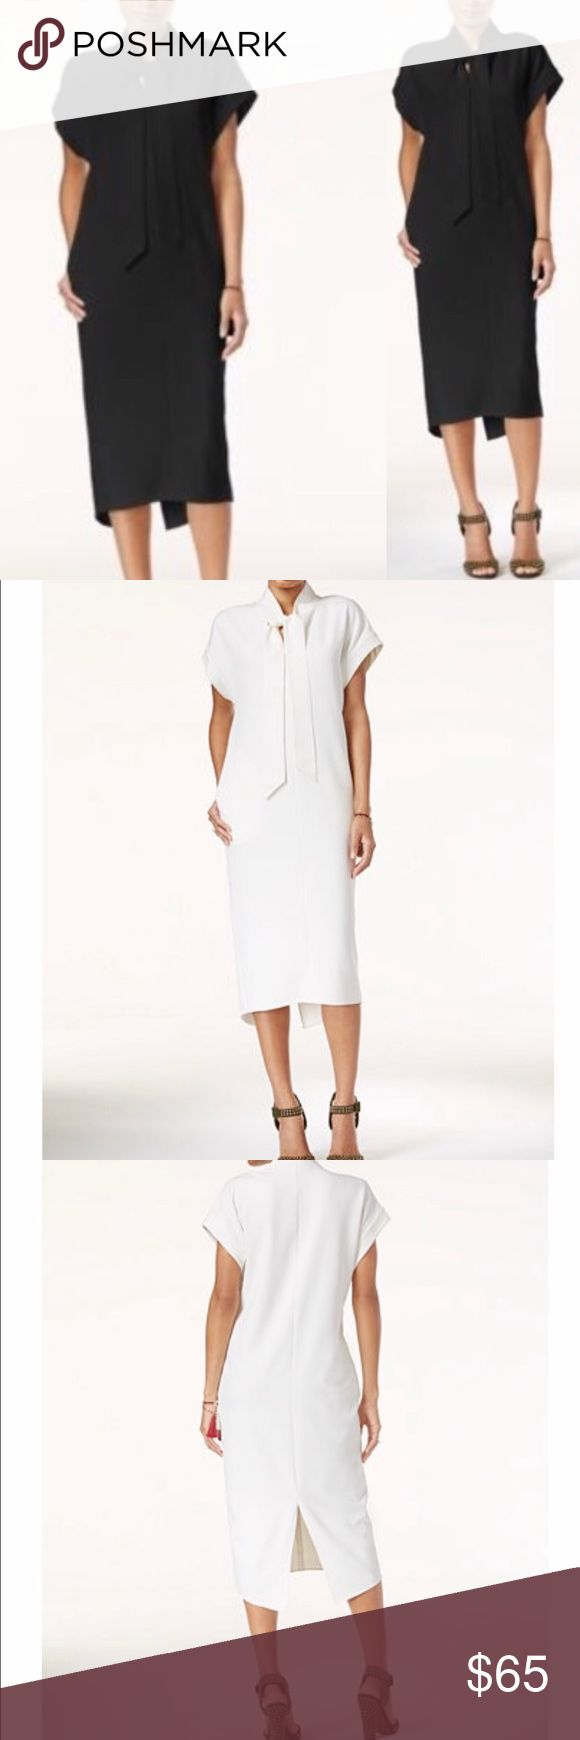 Rachel Roy Tie-Neck Midi Dress Show off your impeccable style in this of-the-moment midi dress from Rachel Rachel Roy. Rachel Roy Dresses Midi